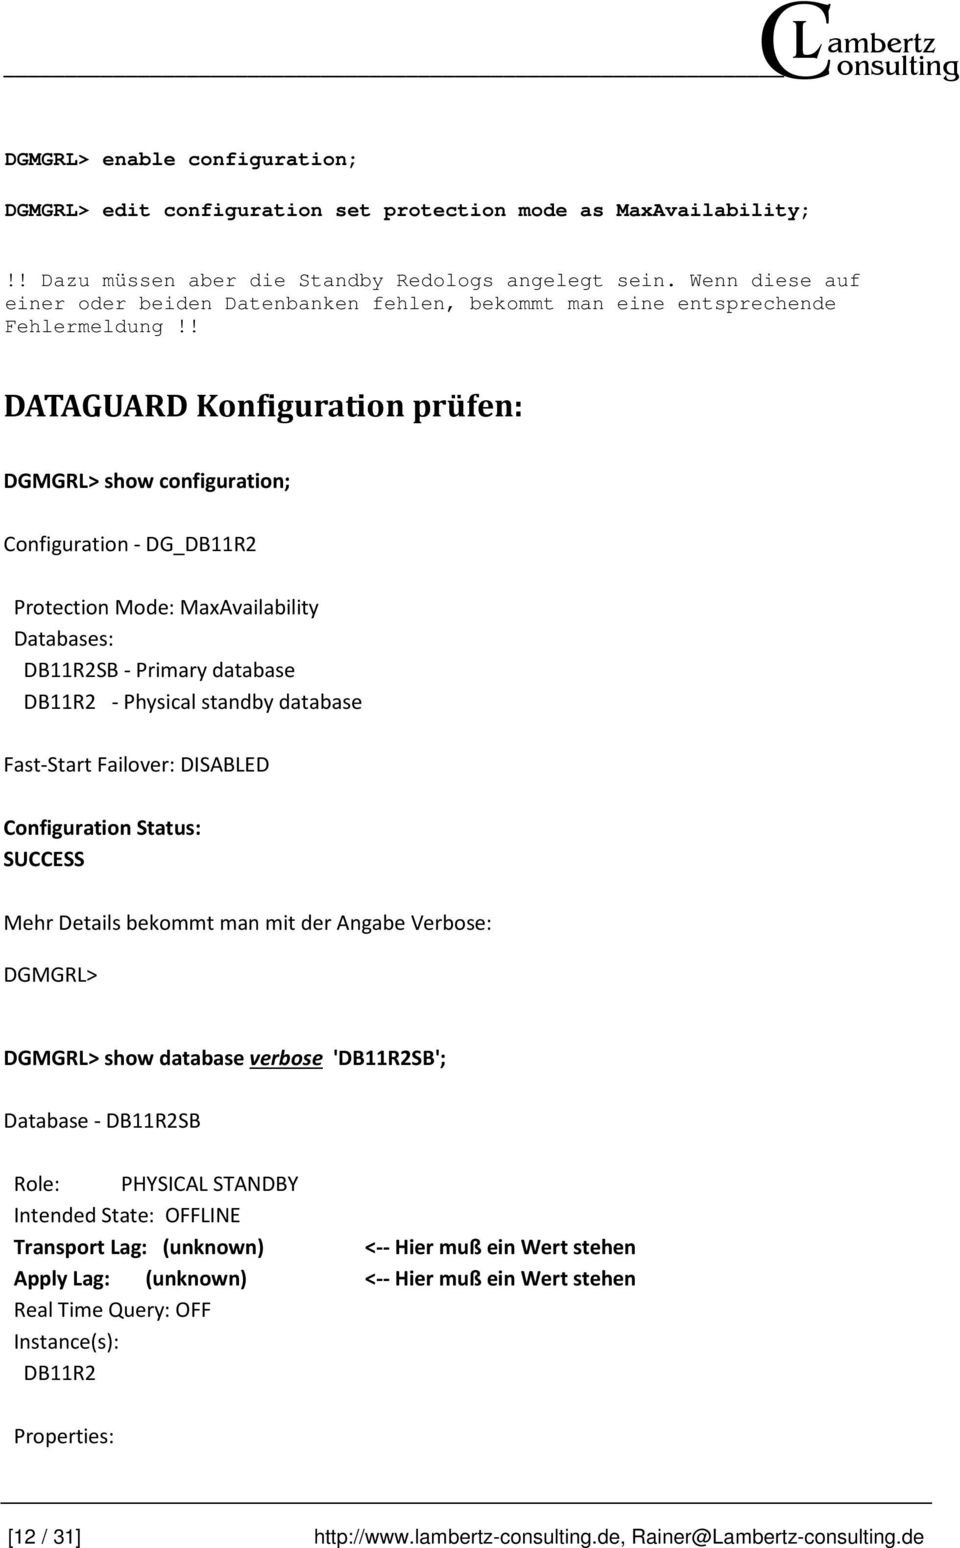 ! DATAGUARD Konfiguration prüfen: DGMGRL> show configuration; Configuration - DG_DB11R2 Protection Mode: MaxAvailability Databases: DB11R2SB - Primary database DB11R2 - Physical standby database